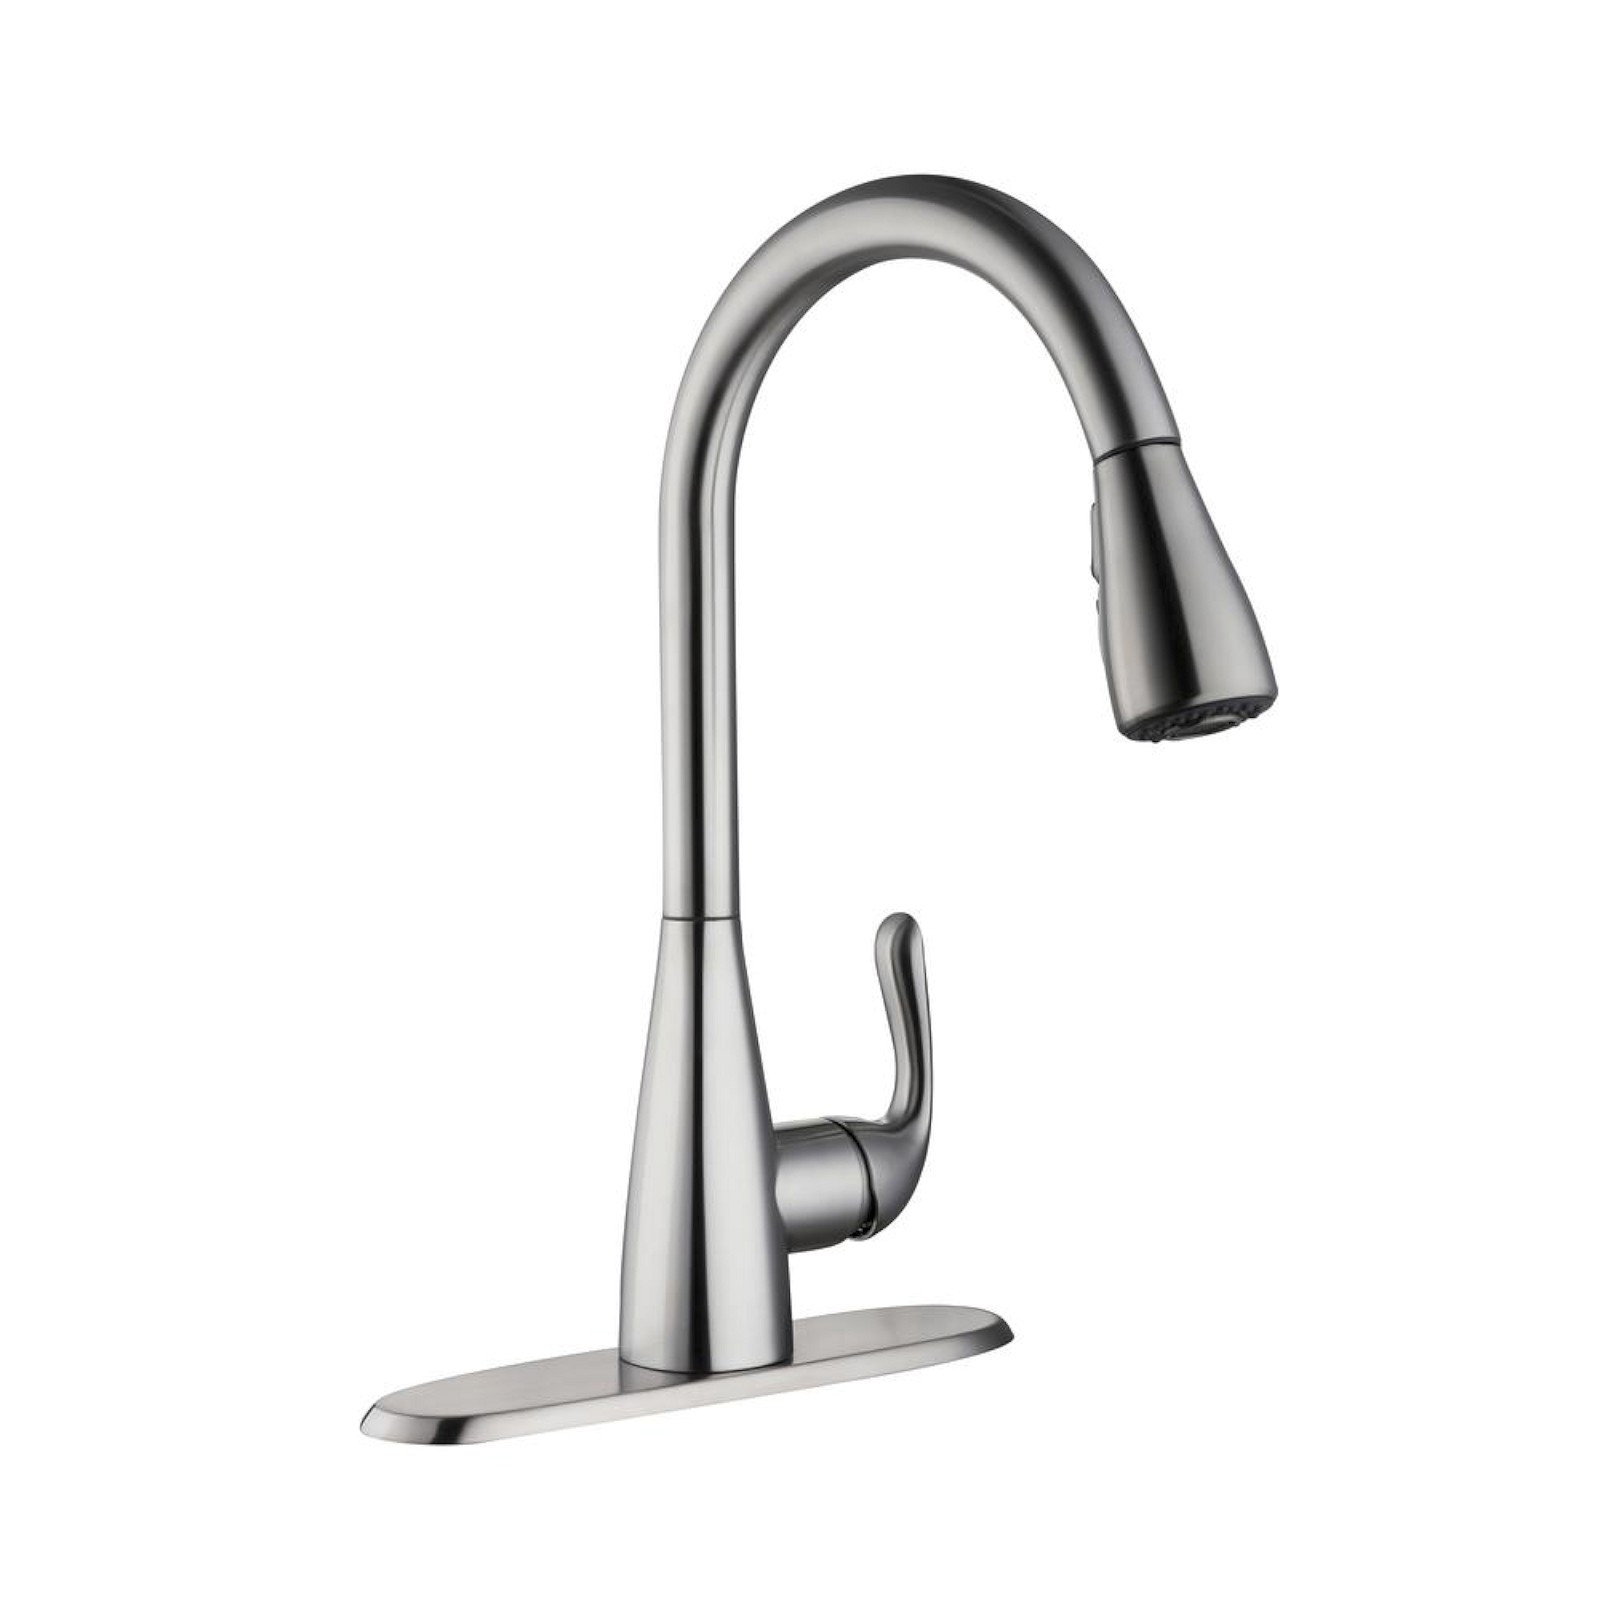 Glacier bay carla single handle pull down sprayer kitchen faucet stainless steel